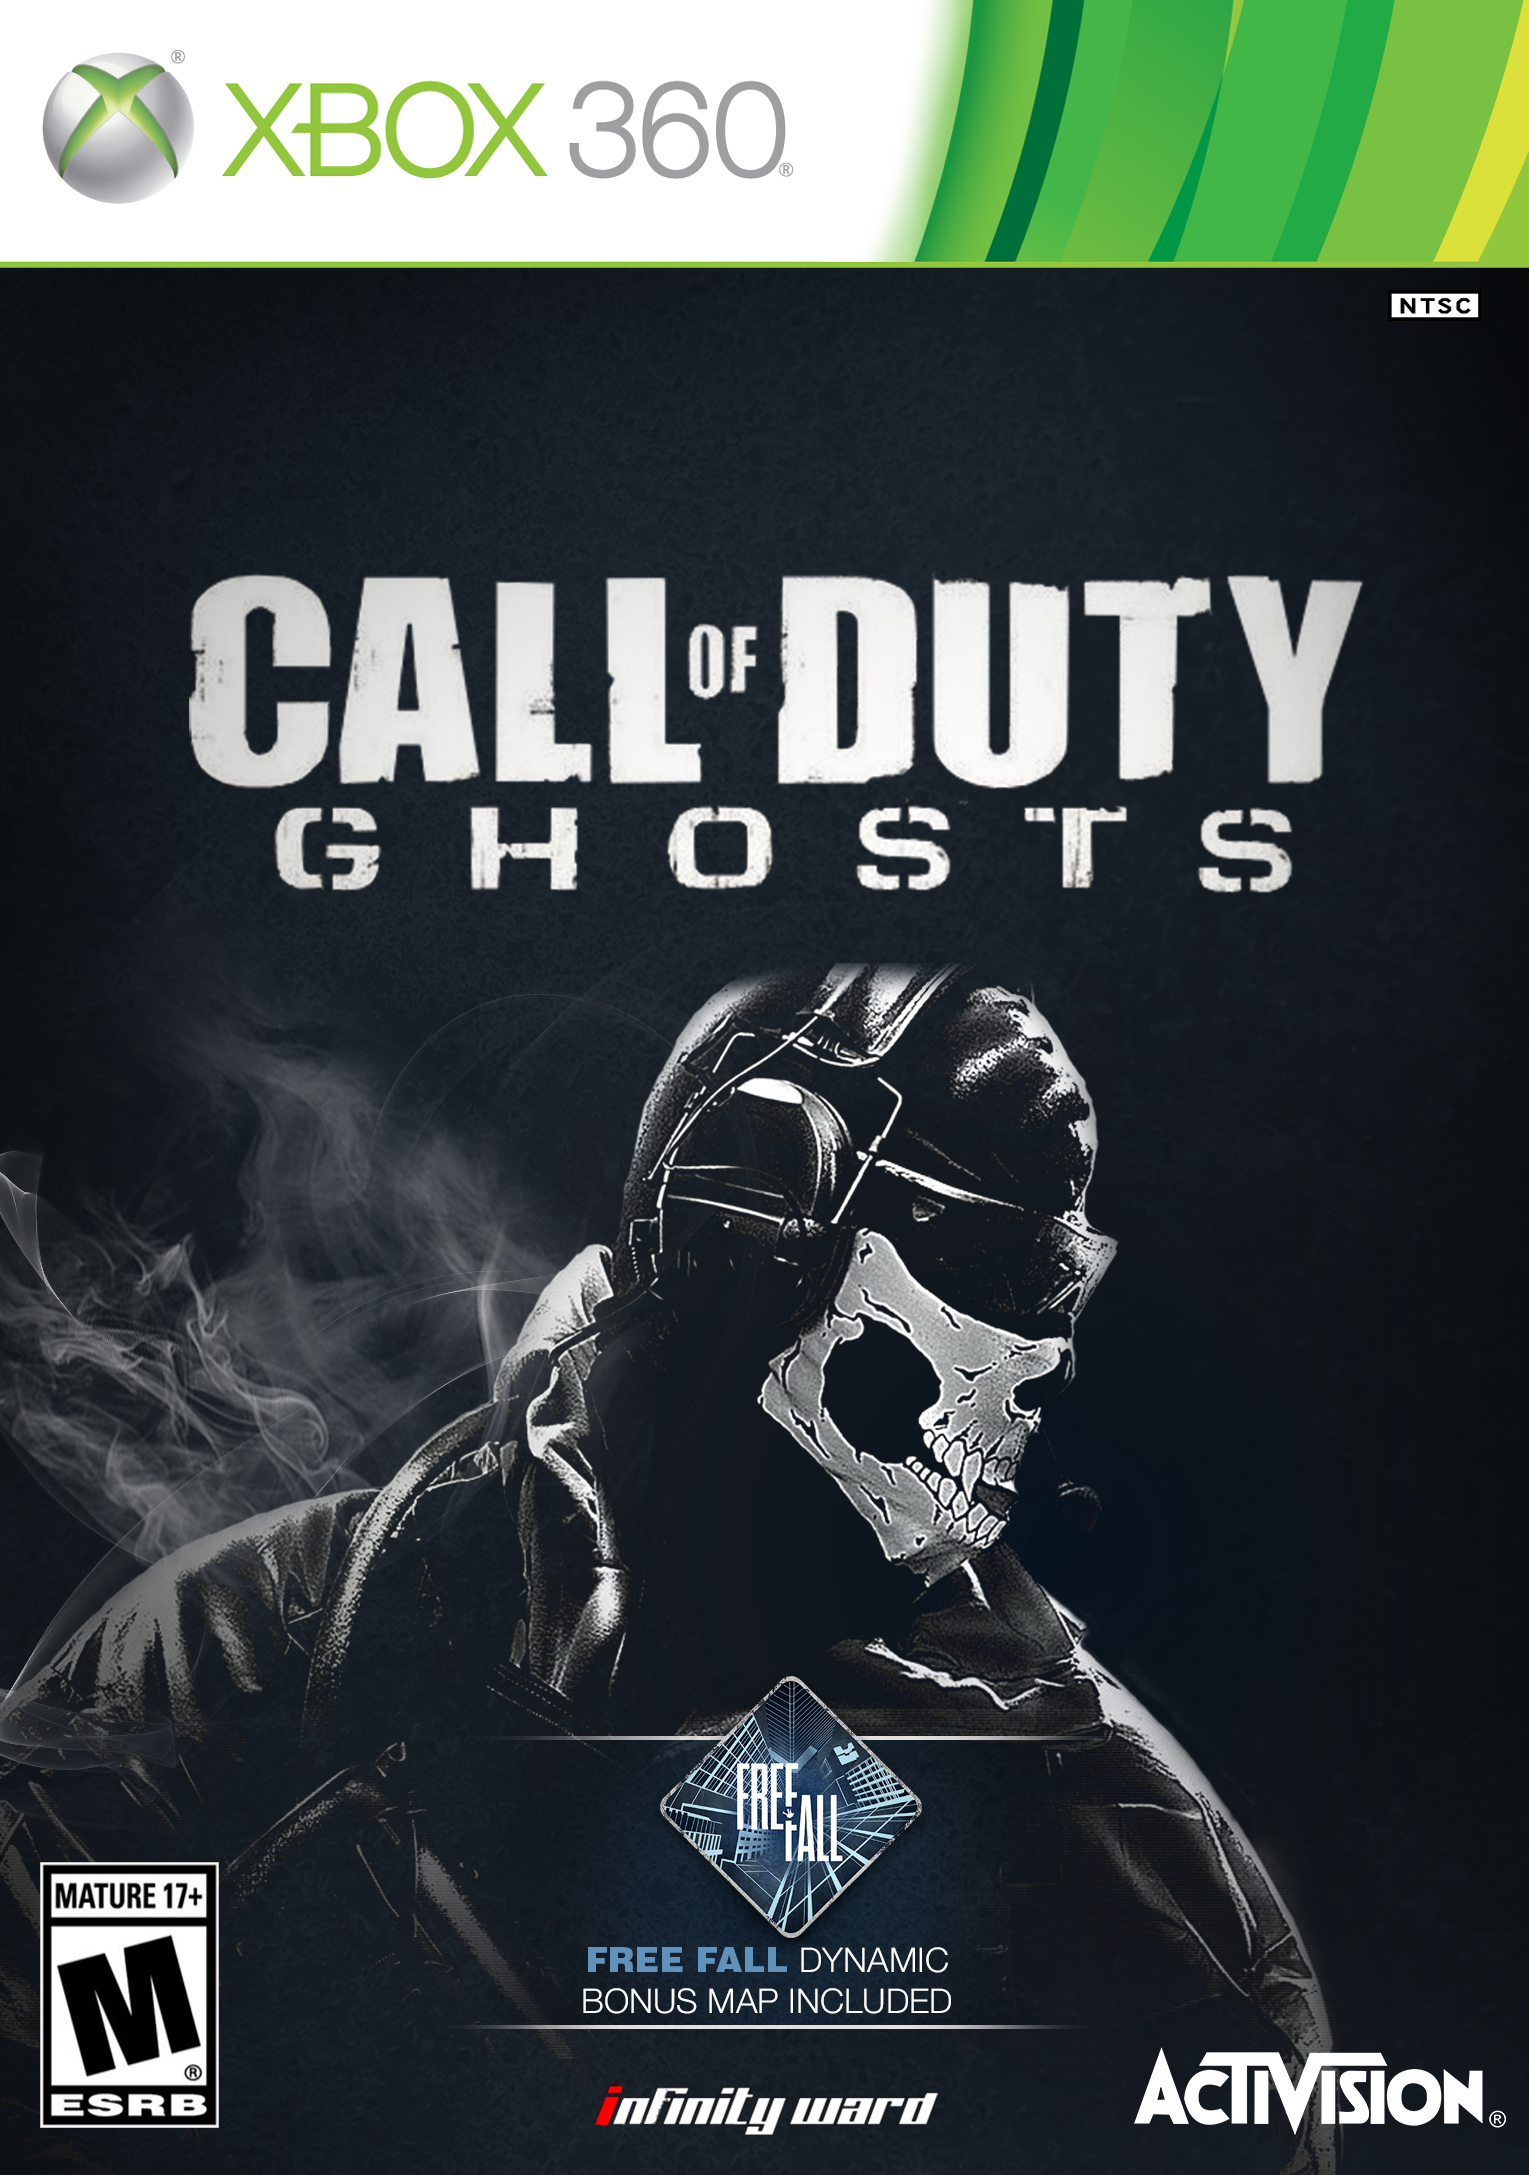 Call of Duty Ghosts Box Art by DiiBz on DeviantArt